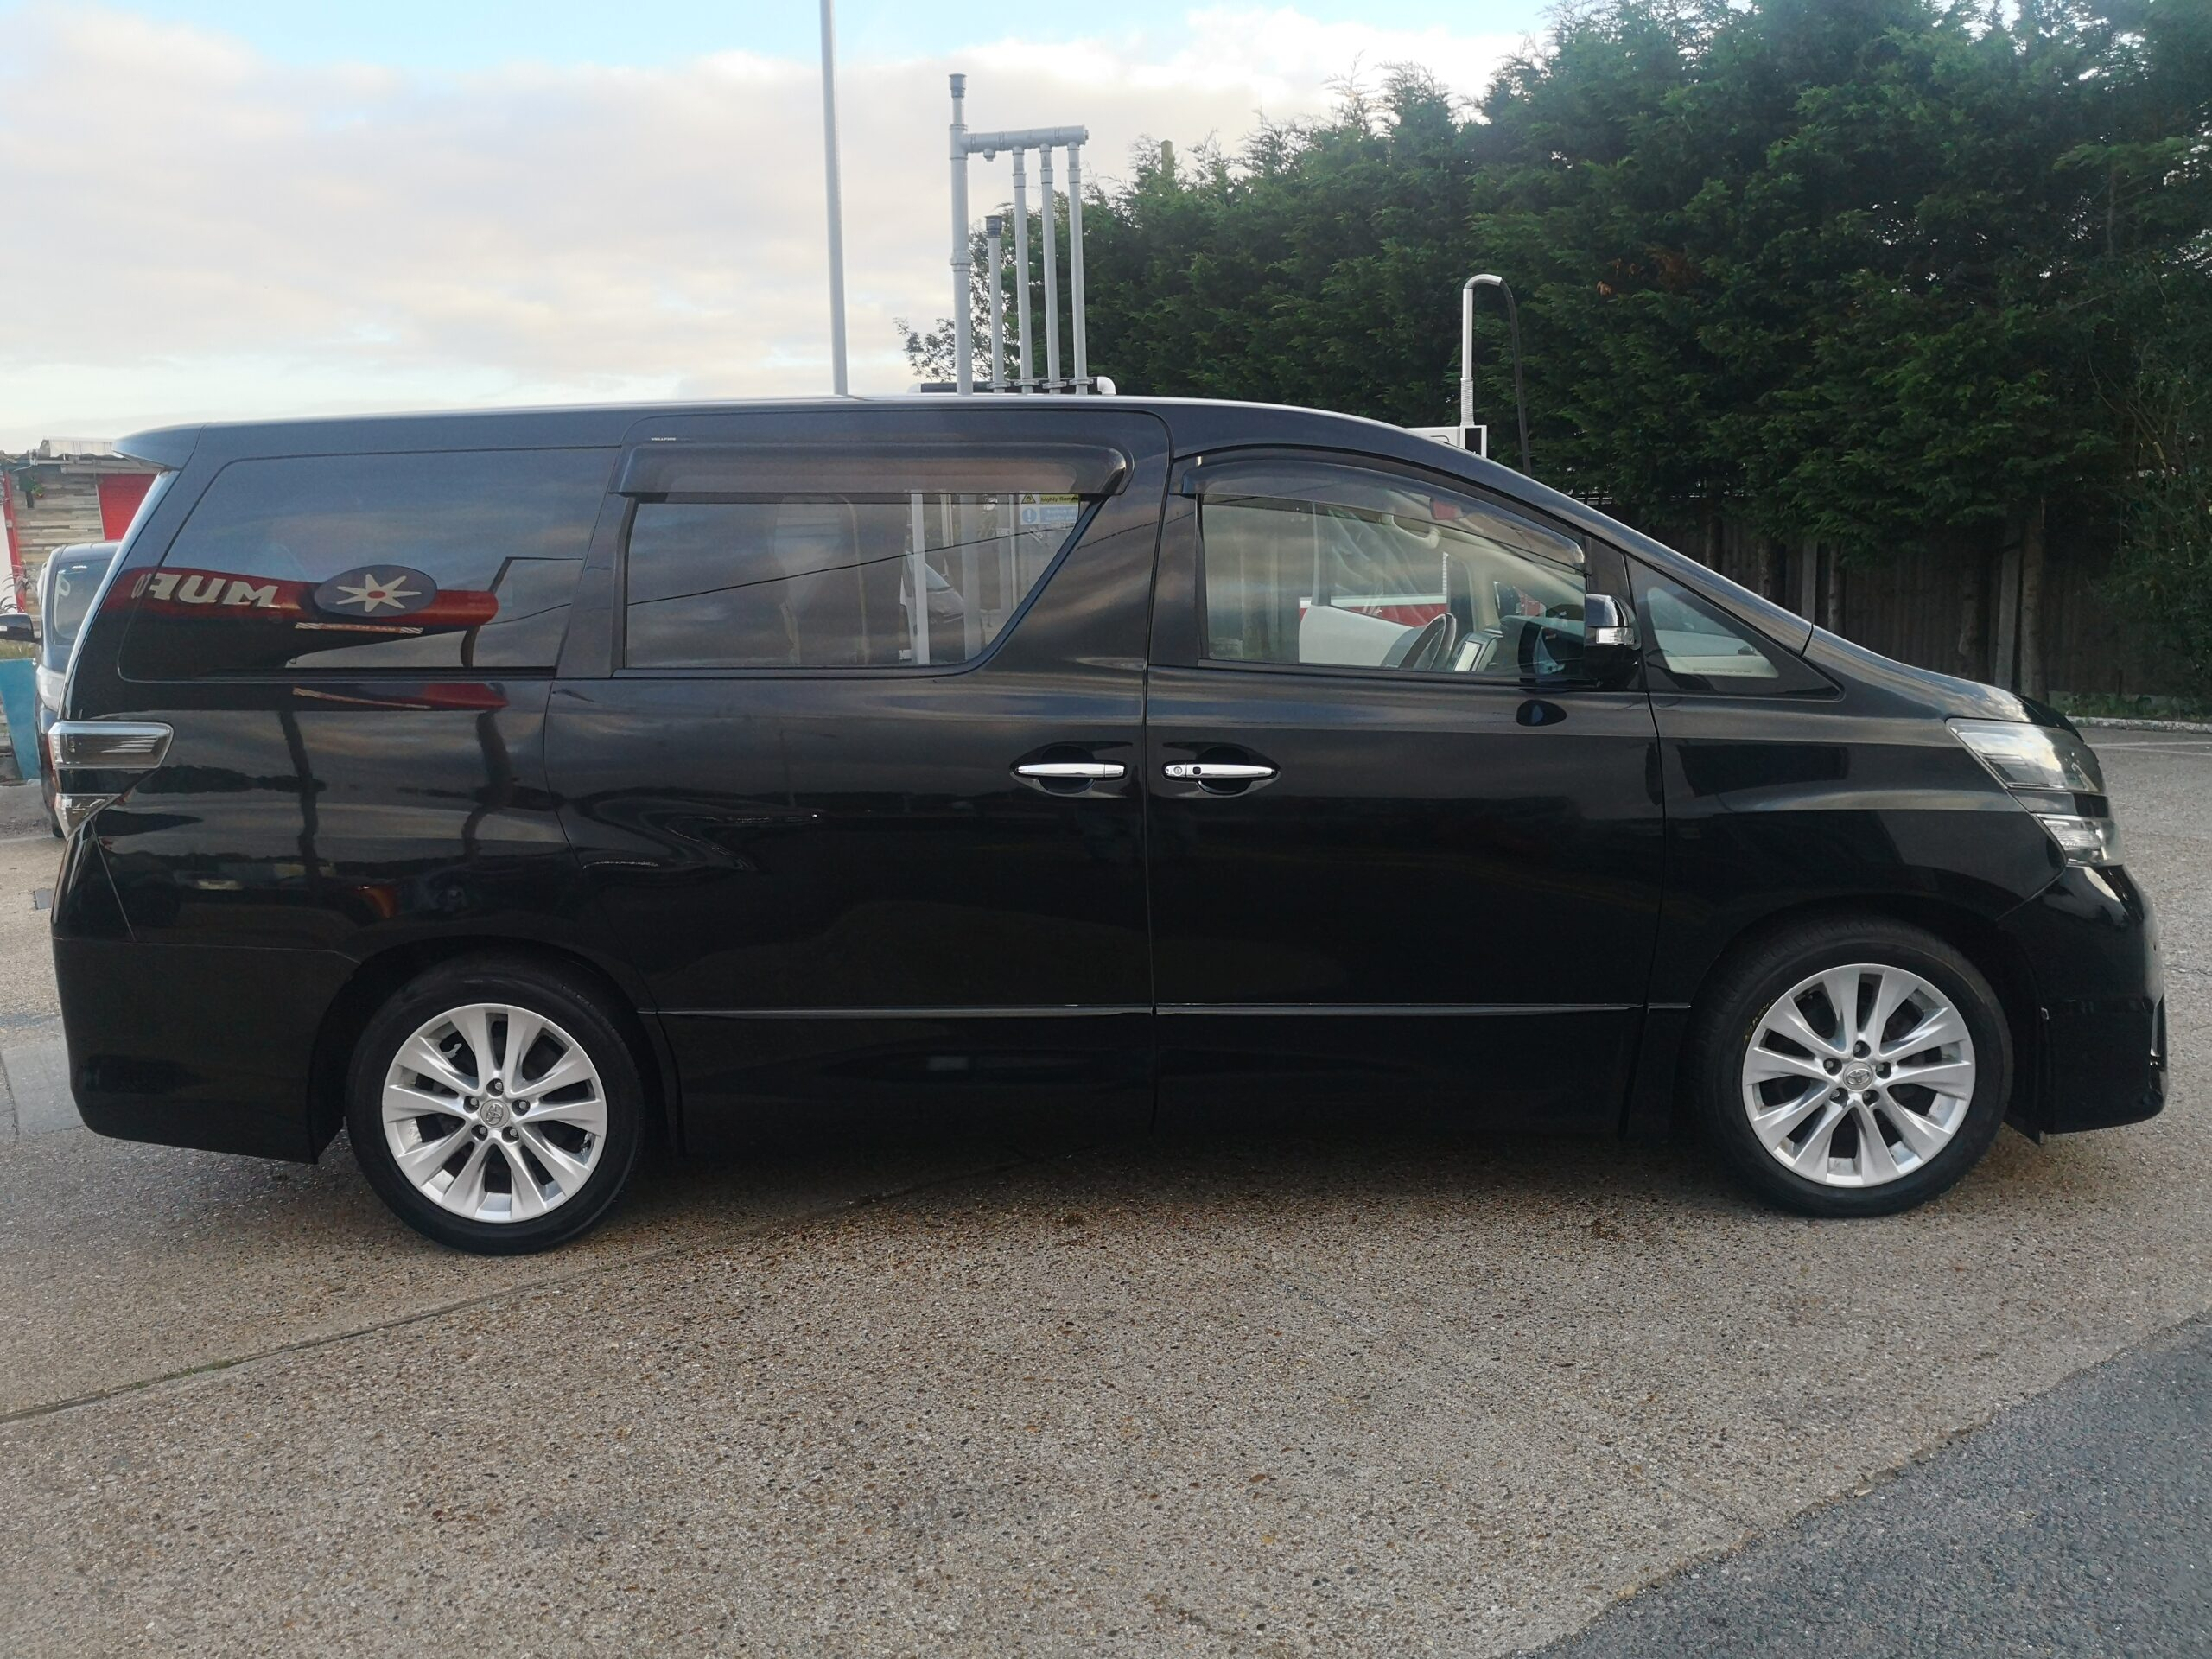 TOYOTA VELLFIRE 3.4 V6 ZG EDITION 7 SEATERS,2008(58) 7 SEATERS,ELECTRIC SEATS